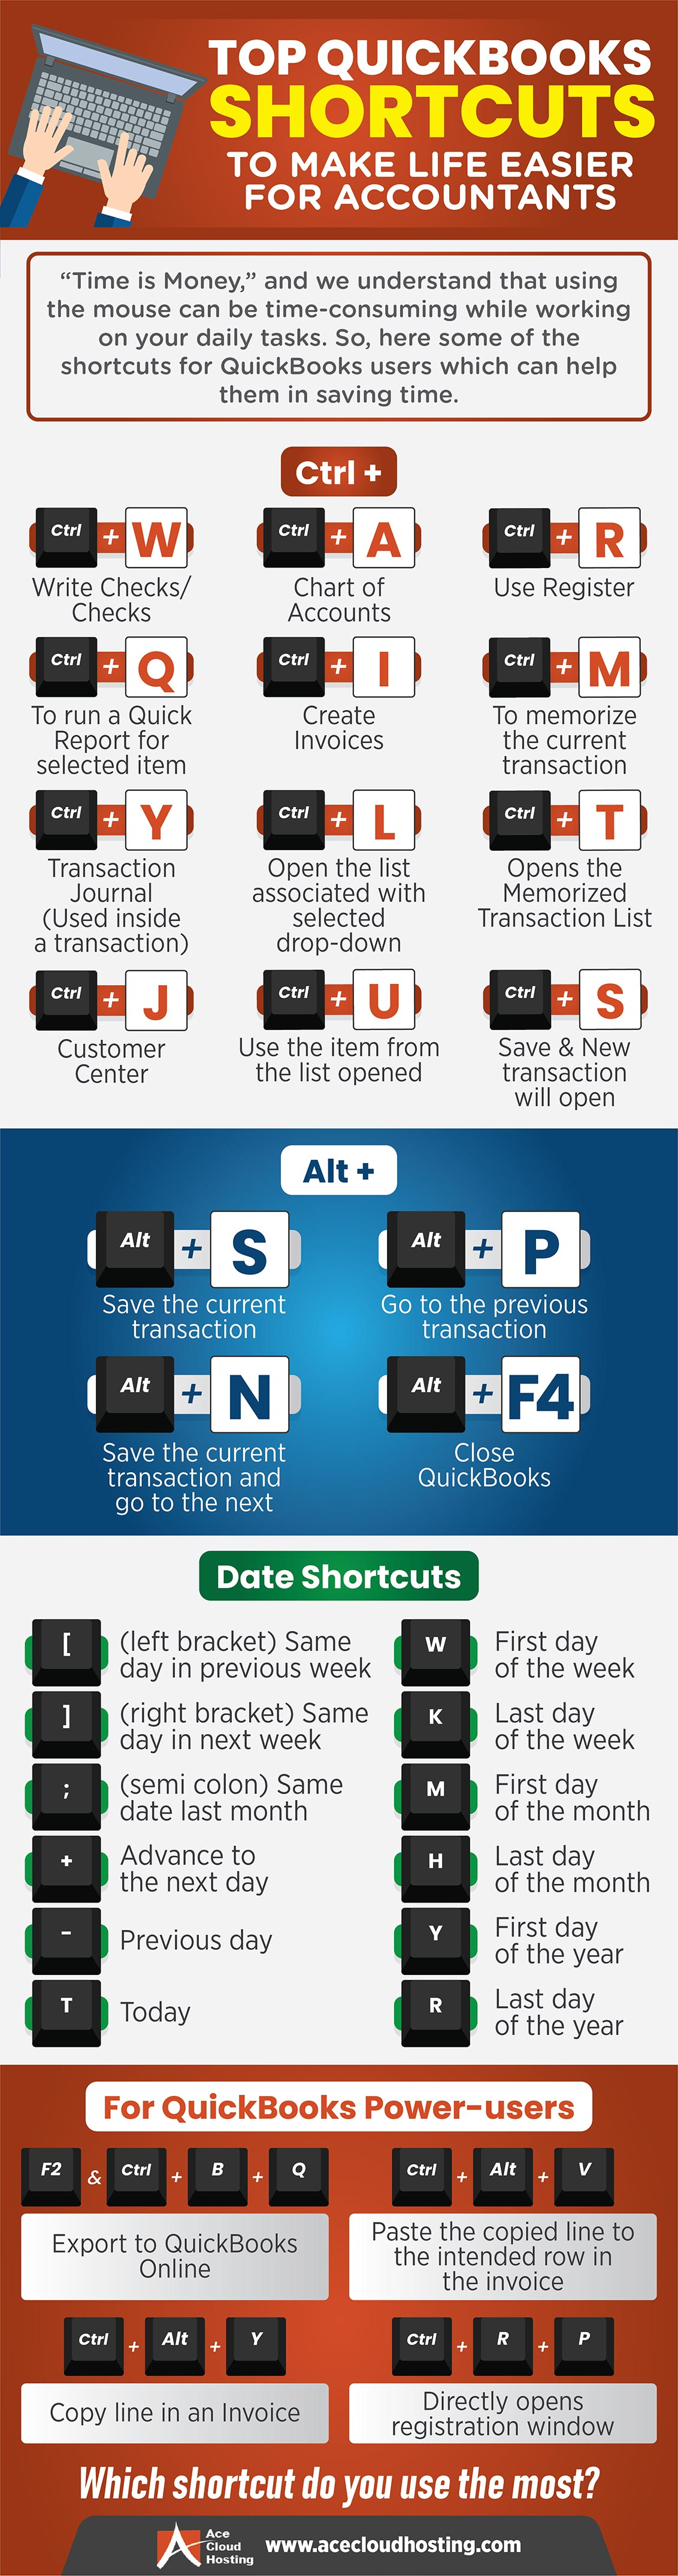 QuickBooks Shortcuts to Make Life Easier for Accountants Infographic